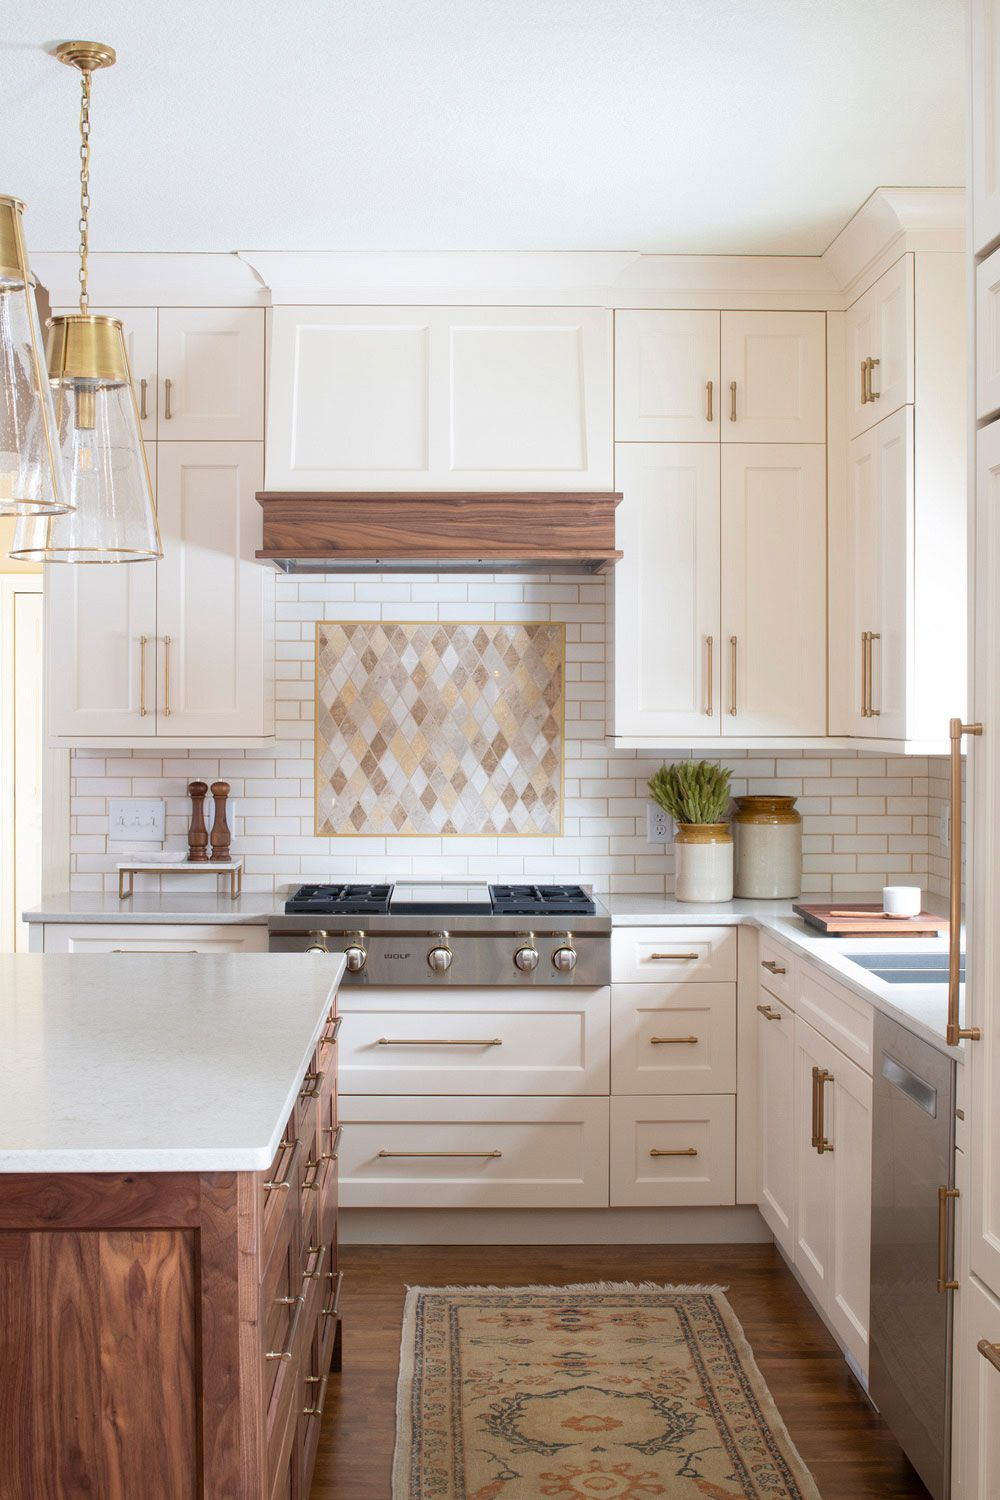 Download Wallpaper White Kitchen Going Out Of Style